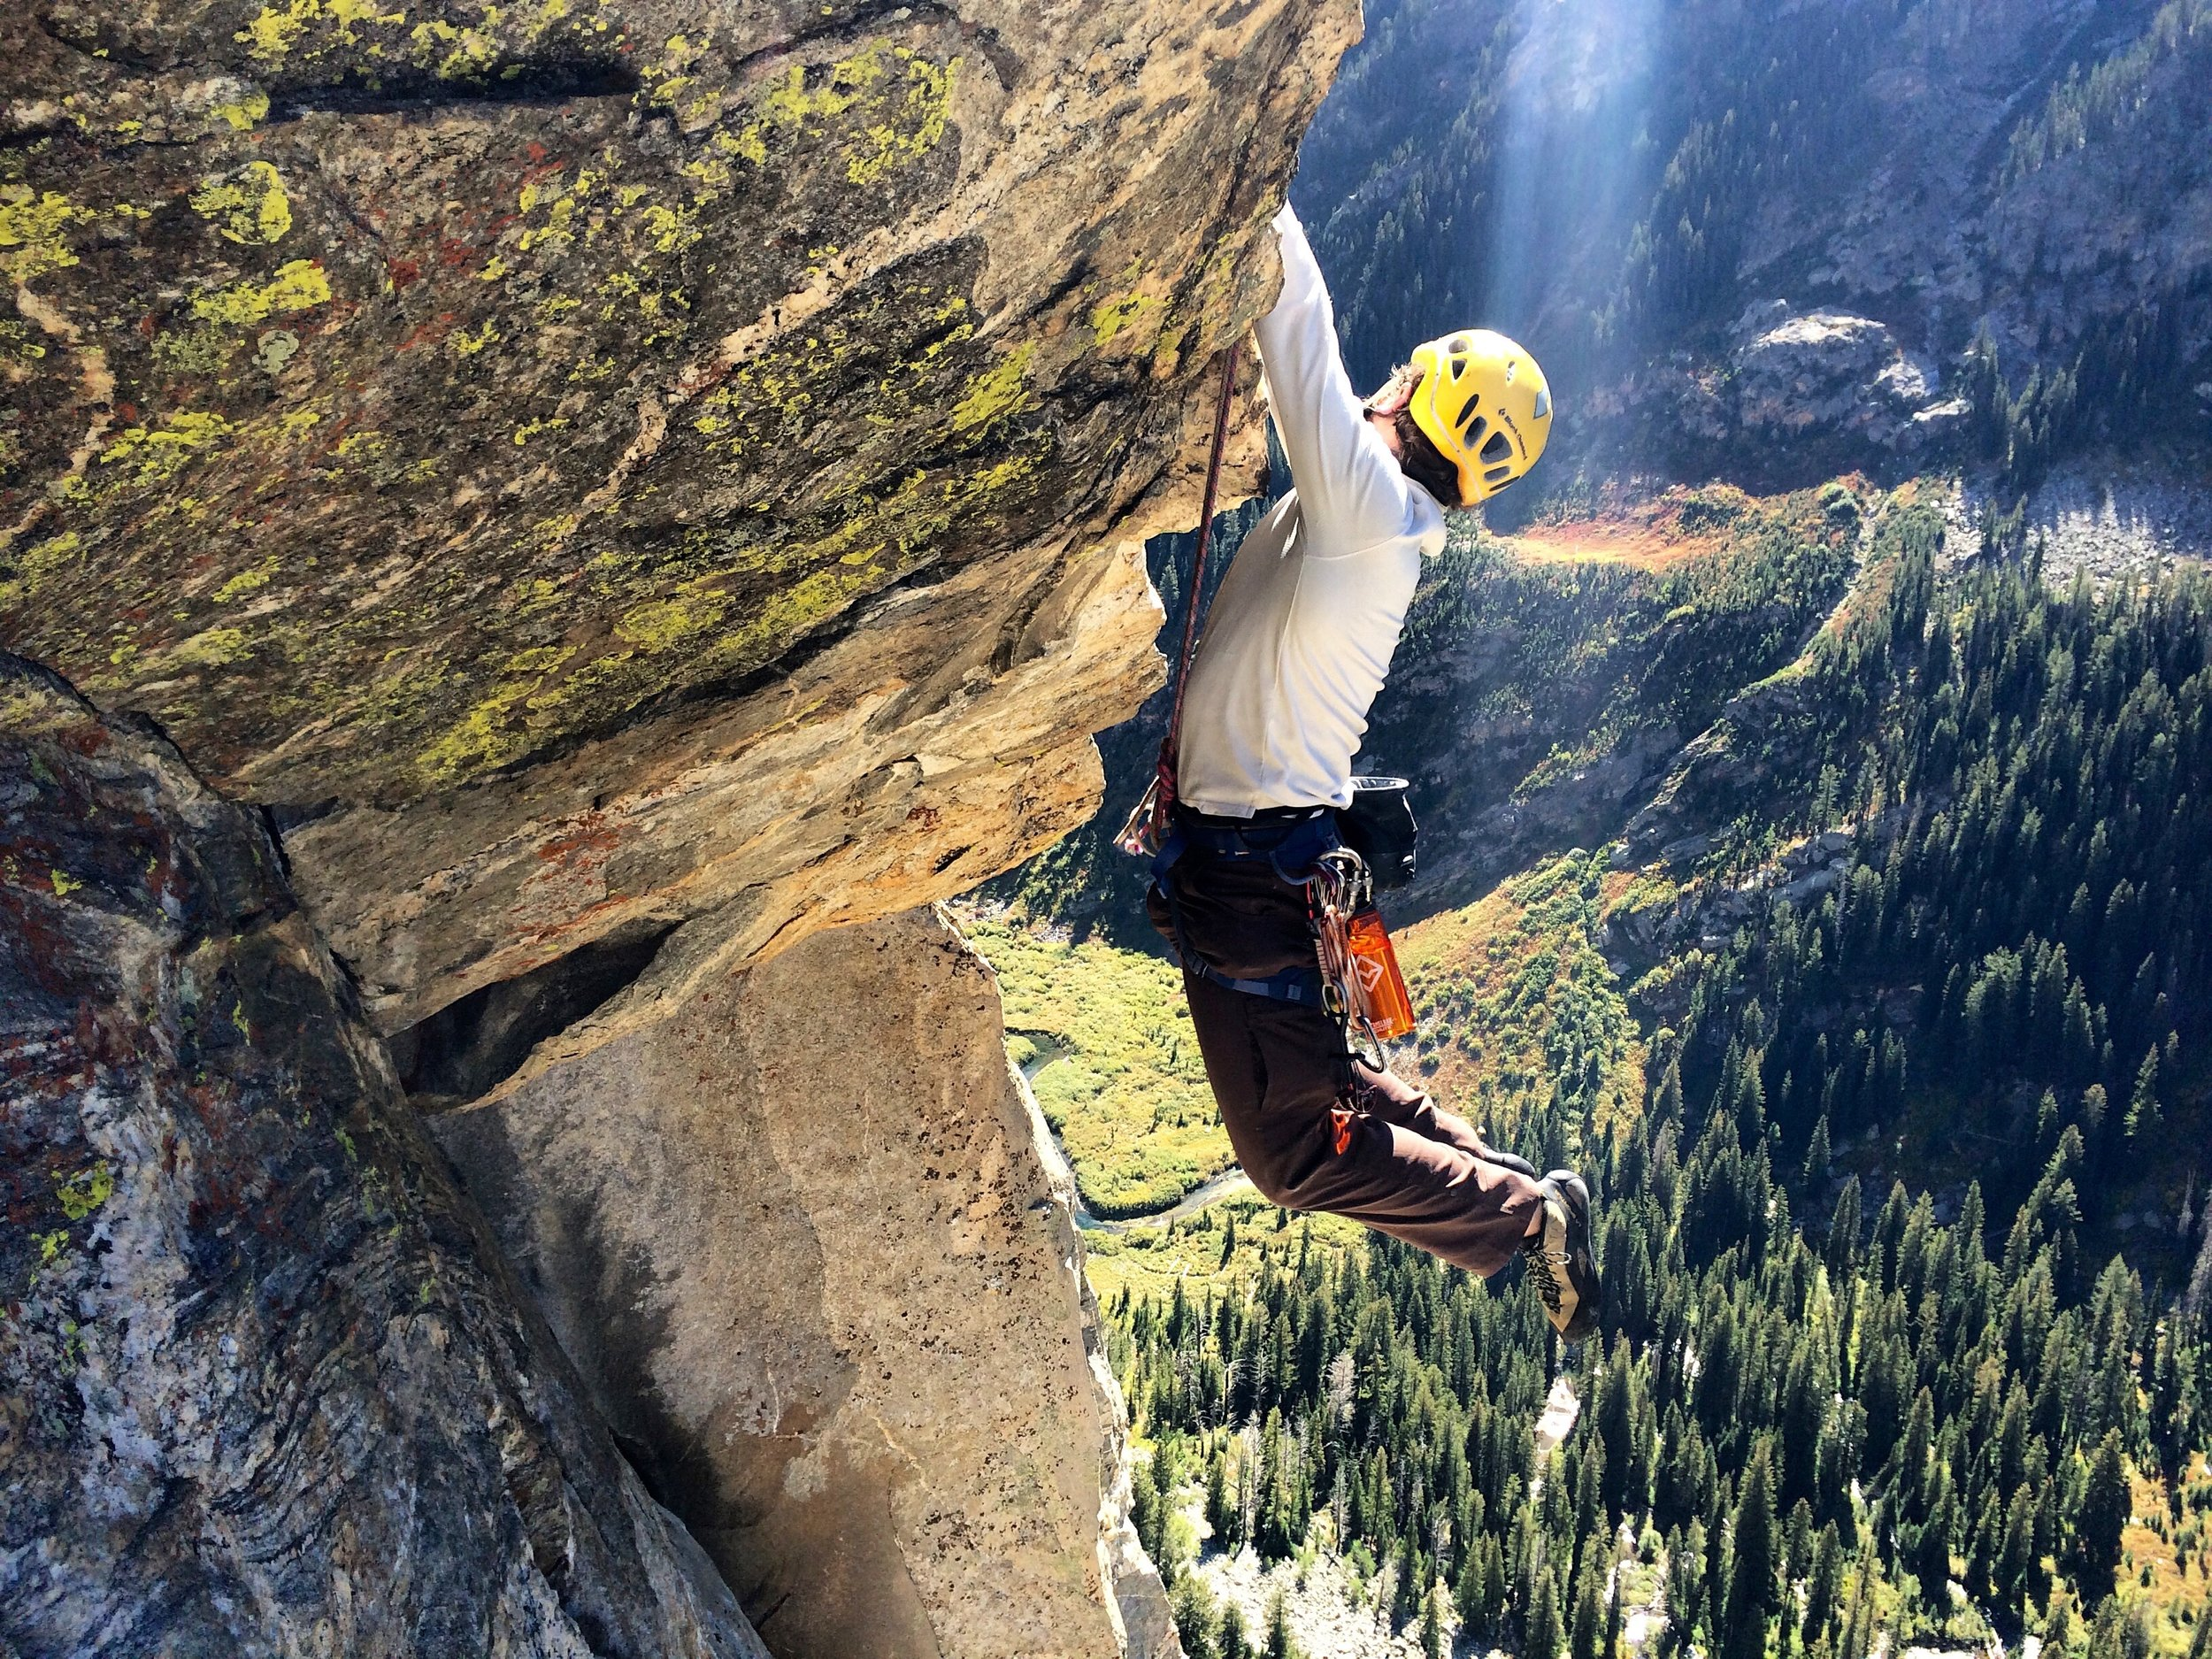 Cutting feet on great holds, just like at the Gunks!